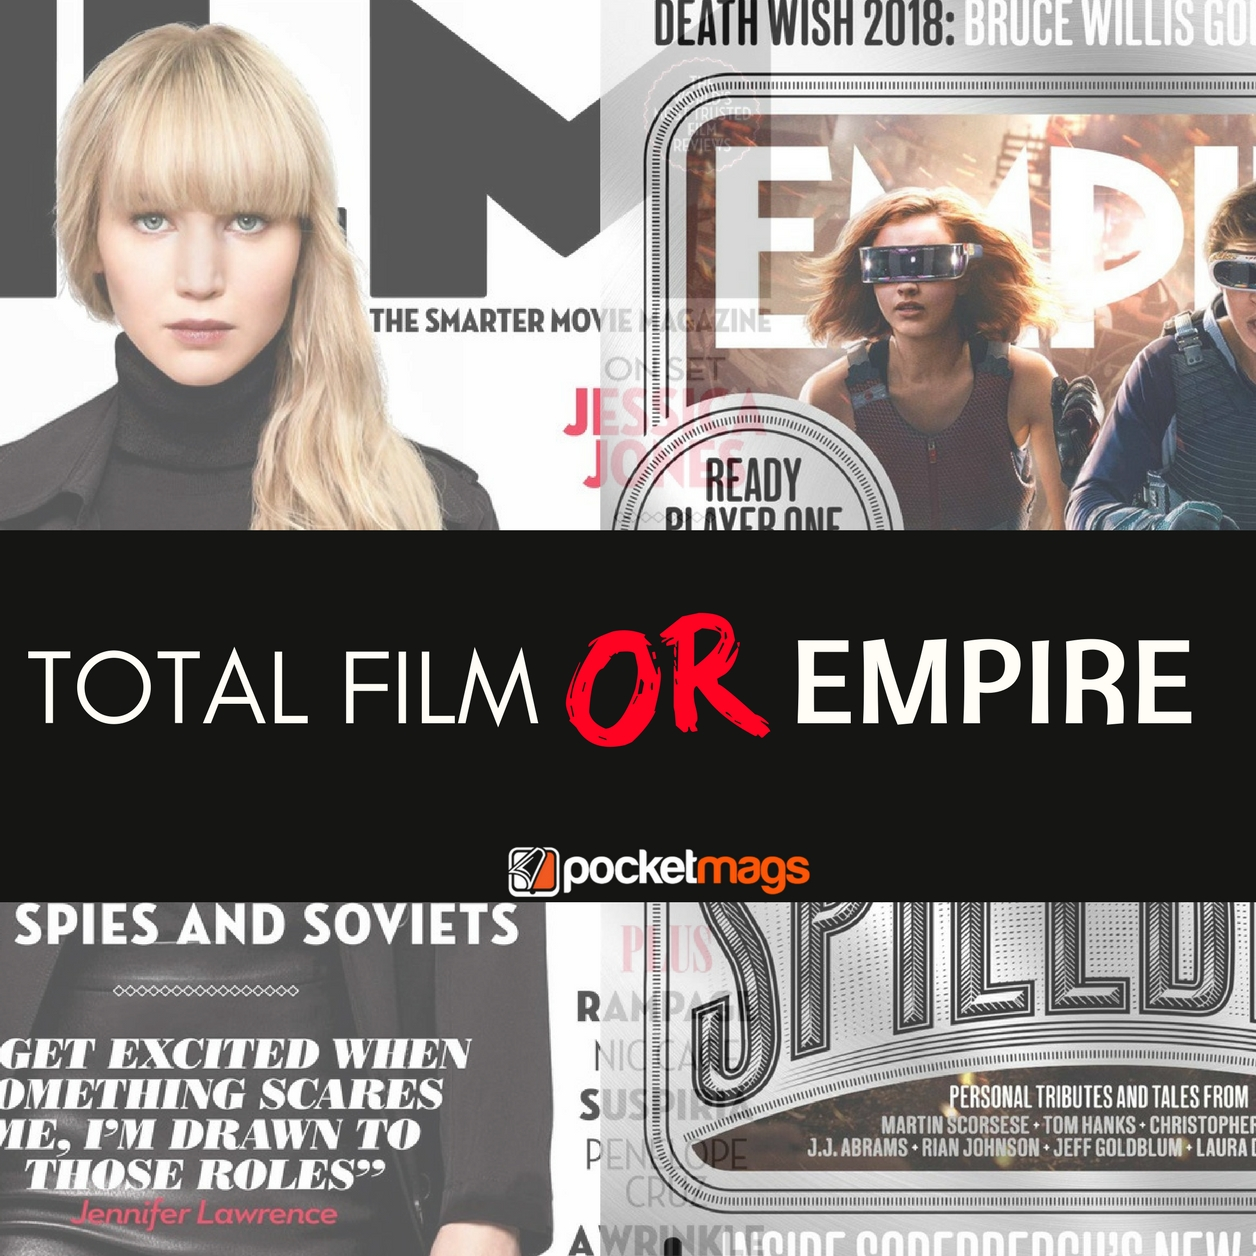 Who Will Get Your Nomination? Total Film or Empire